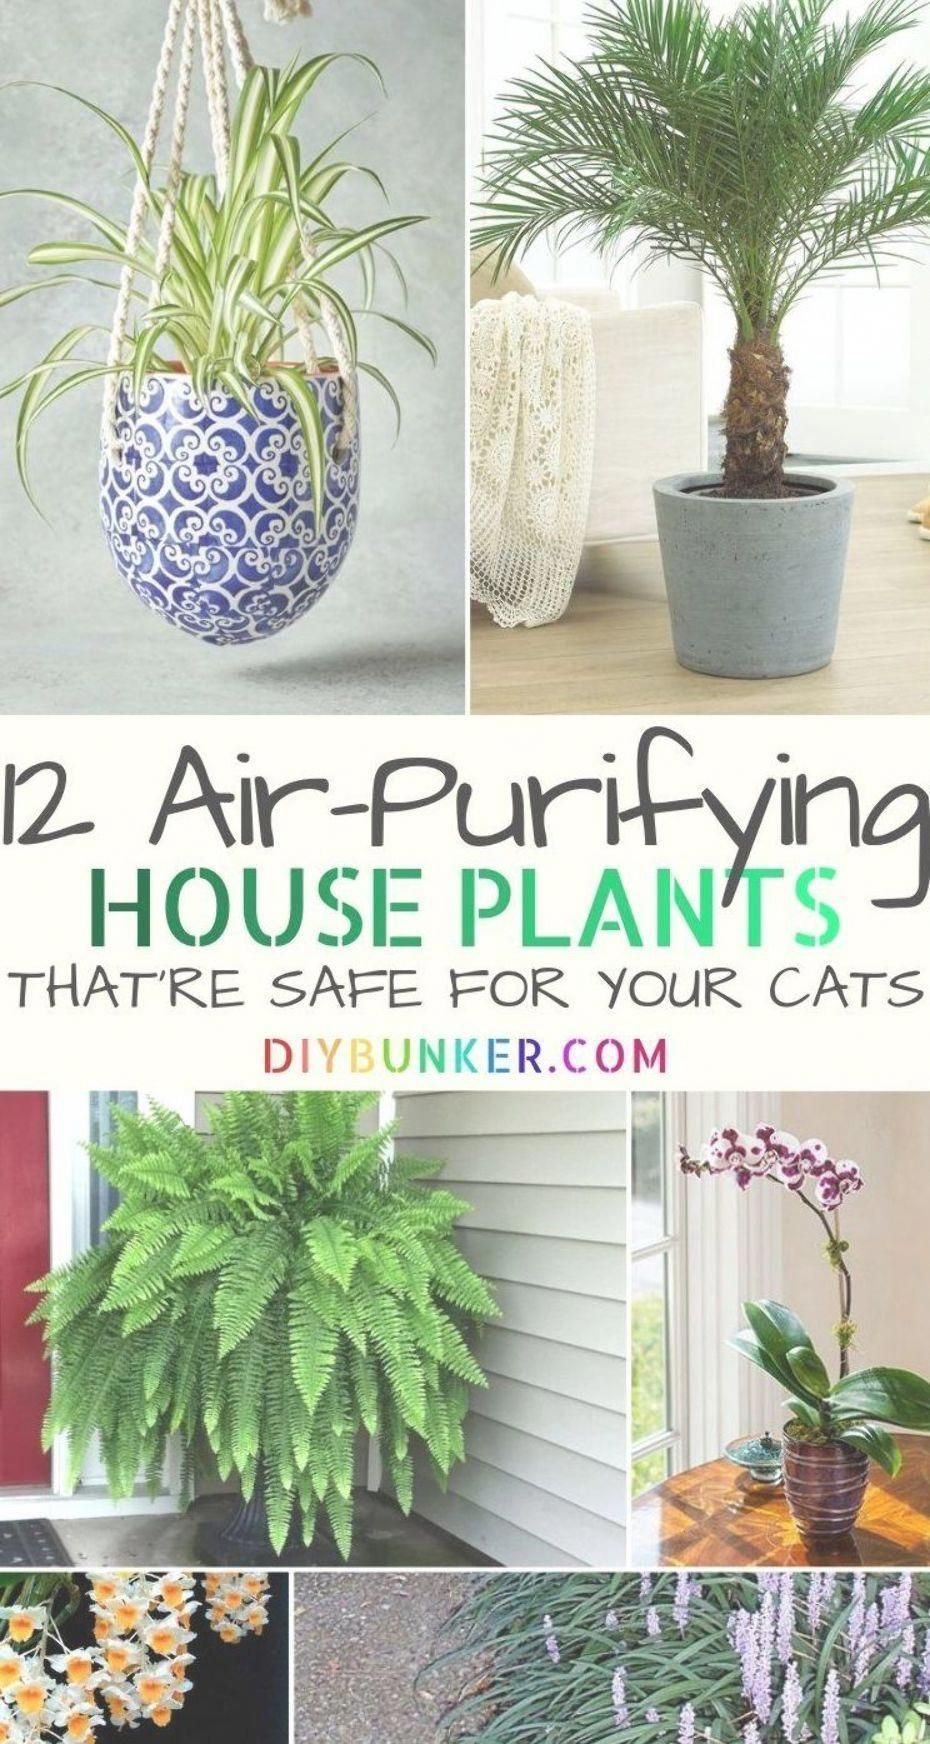 These air purifying house plants are even safe for cats